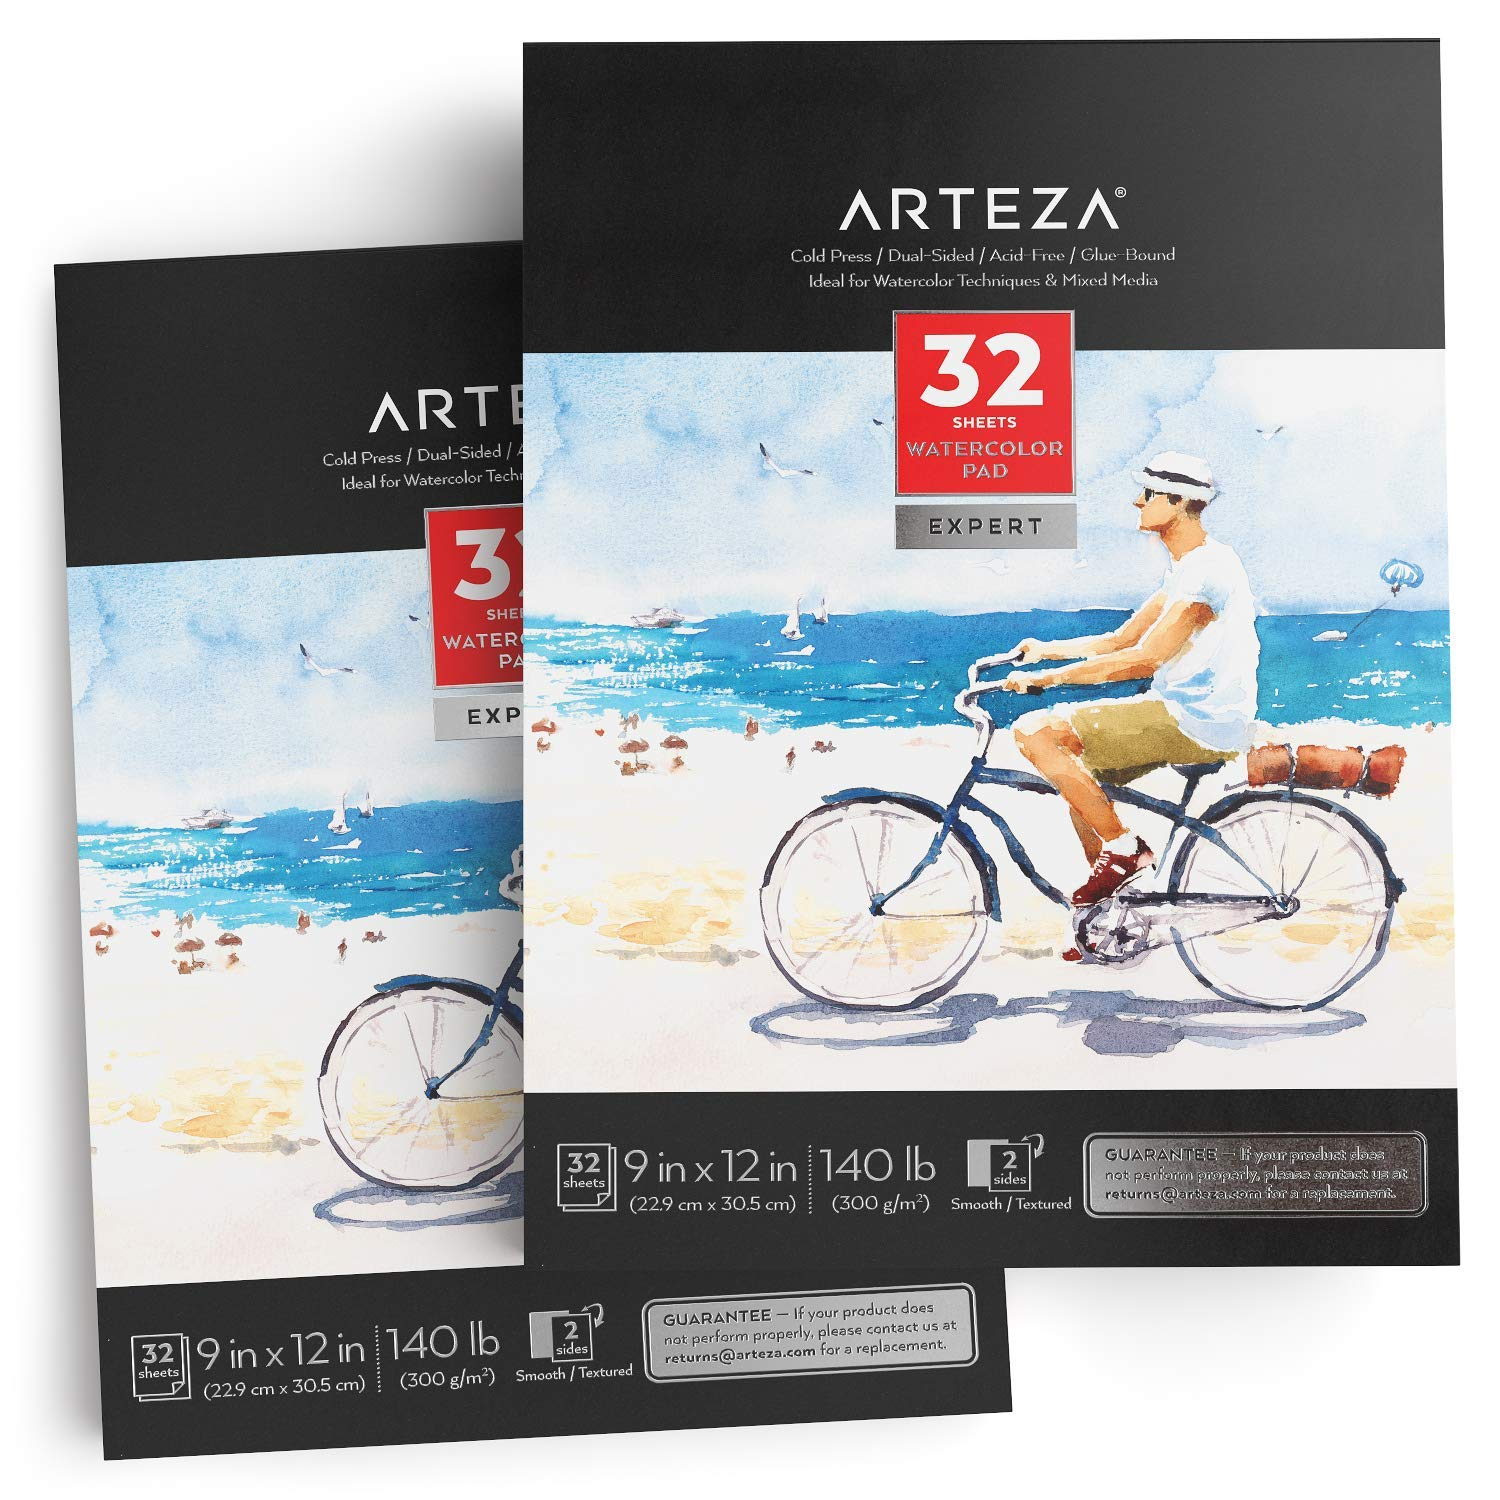 ARTEZA 9x12'' Expert Watercolor Pad, Pack of 2, 64 Sheets (140lb/300gsm), Cold Pressed, Acid Free Paper, 32 Sheets Each, Ideal for Watercolor Techniques and Mixed Media